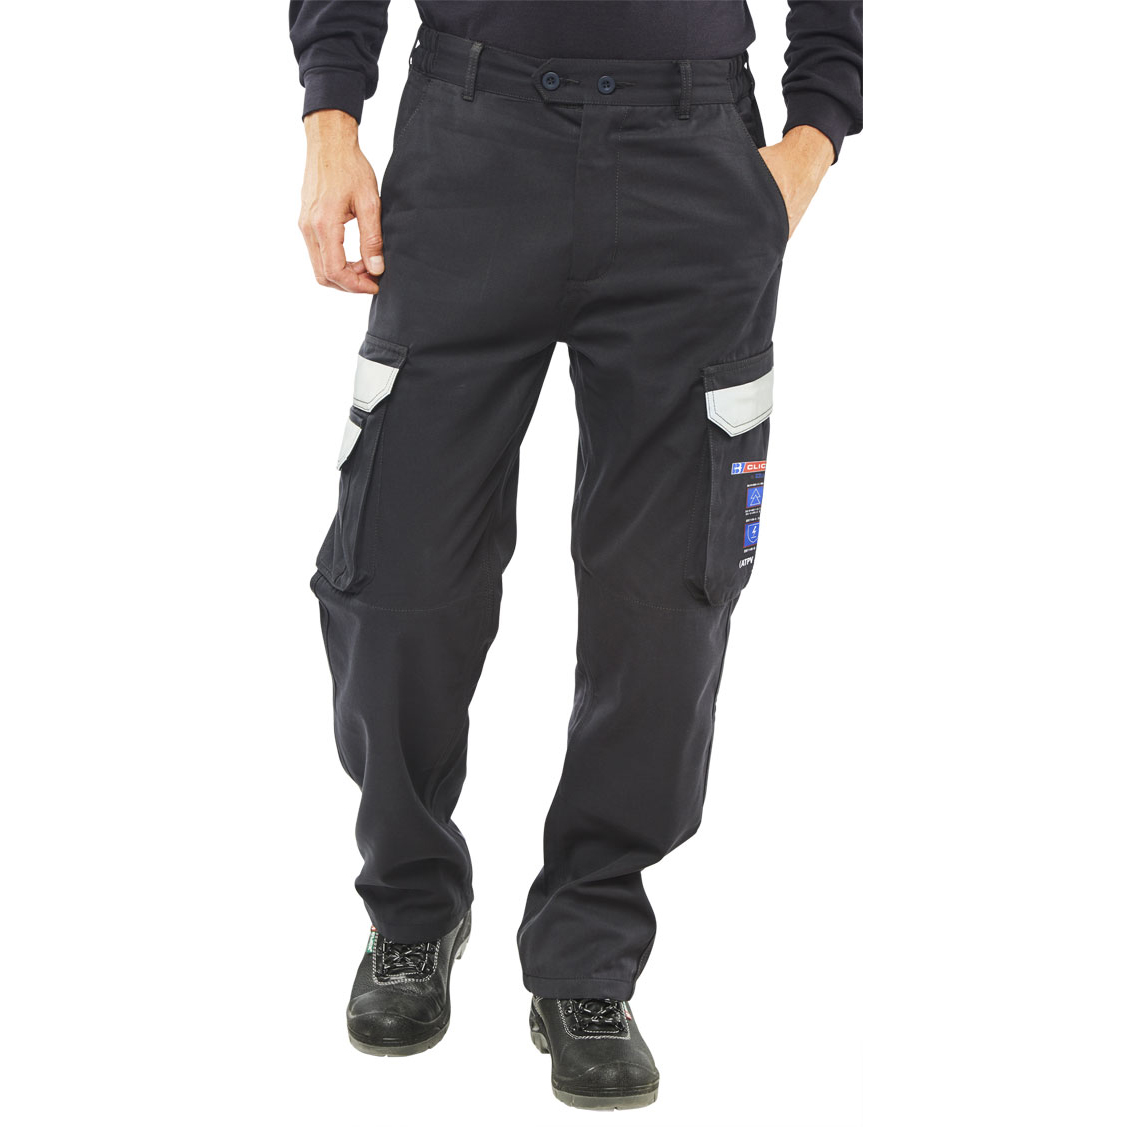 Fire Retardant / Flame Resistant Click Arc Flash Trousers Fire Retardant Navy Blue 44 Ref CARC4N44 *Up to 3 Day Leadtime*